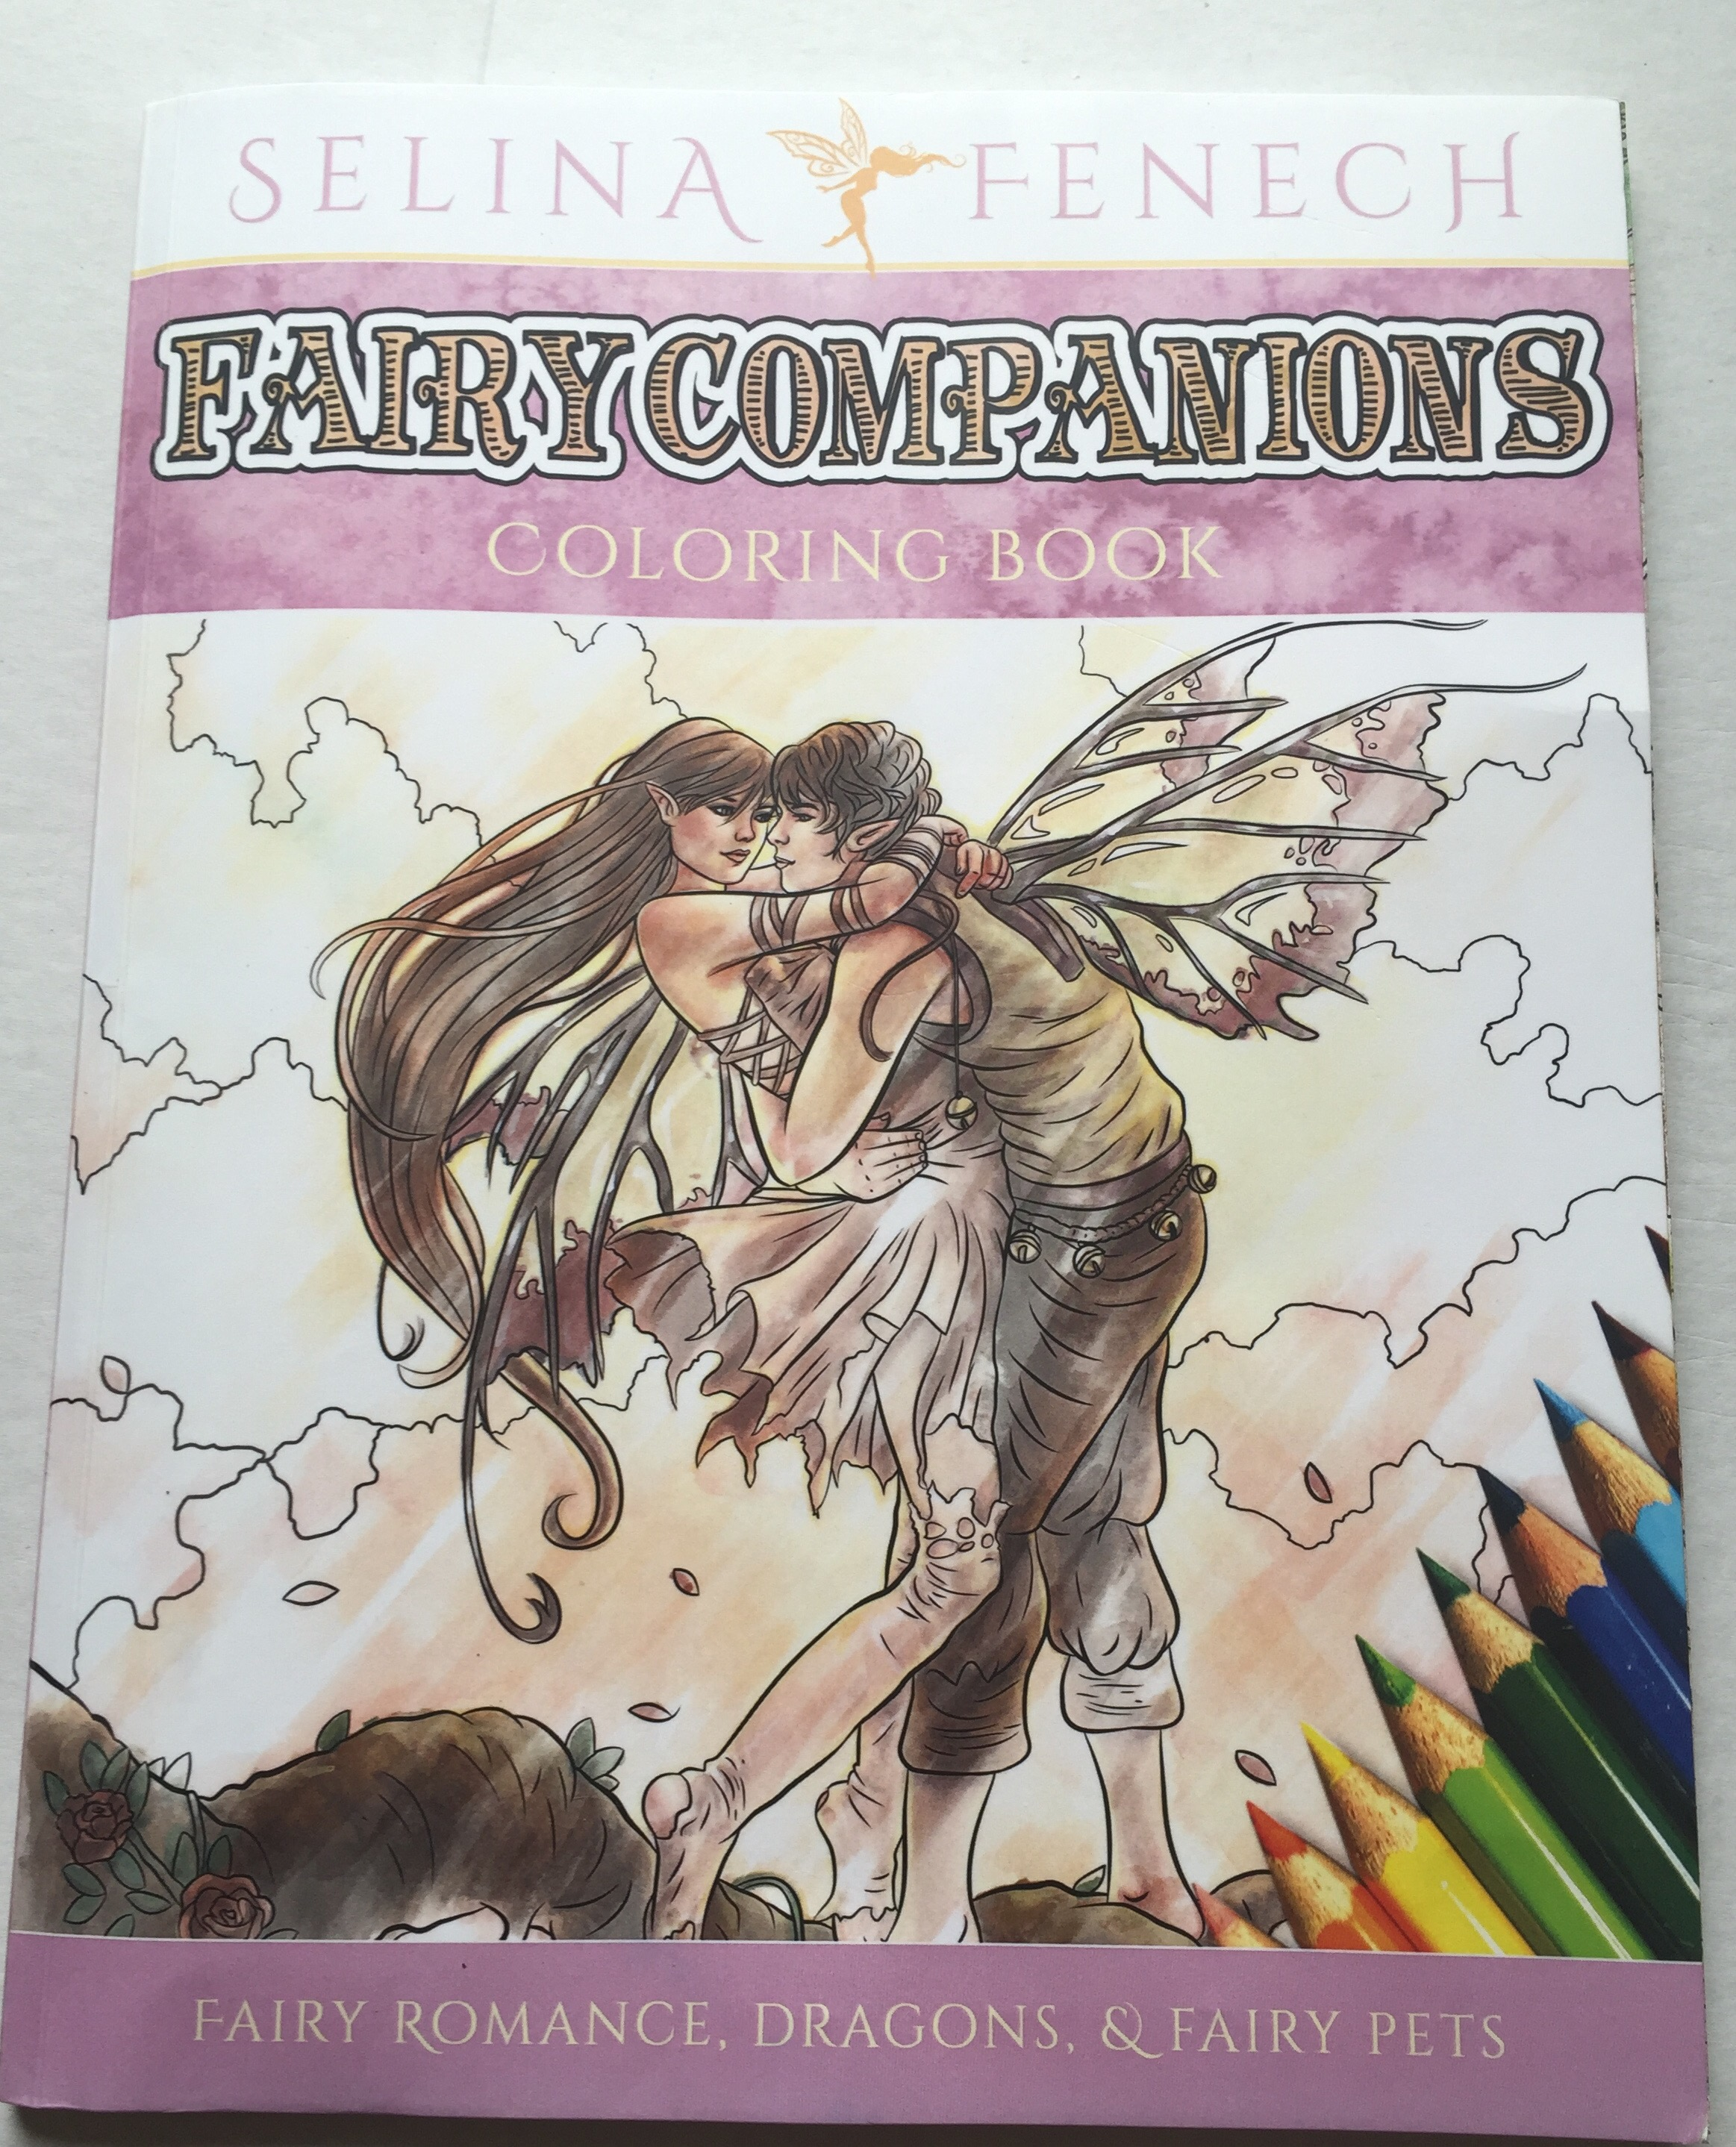 adult colouring coloring mindfulness fairies dragon fantasy colored colour color stress relief selina fenech stress depression pain review books book